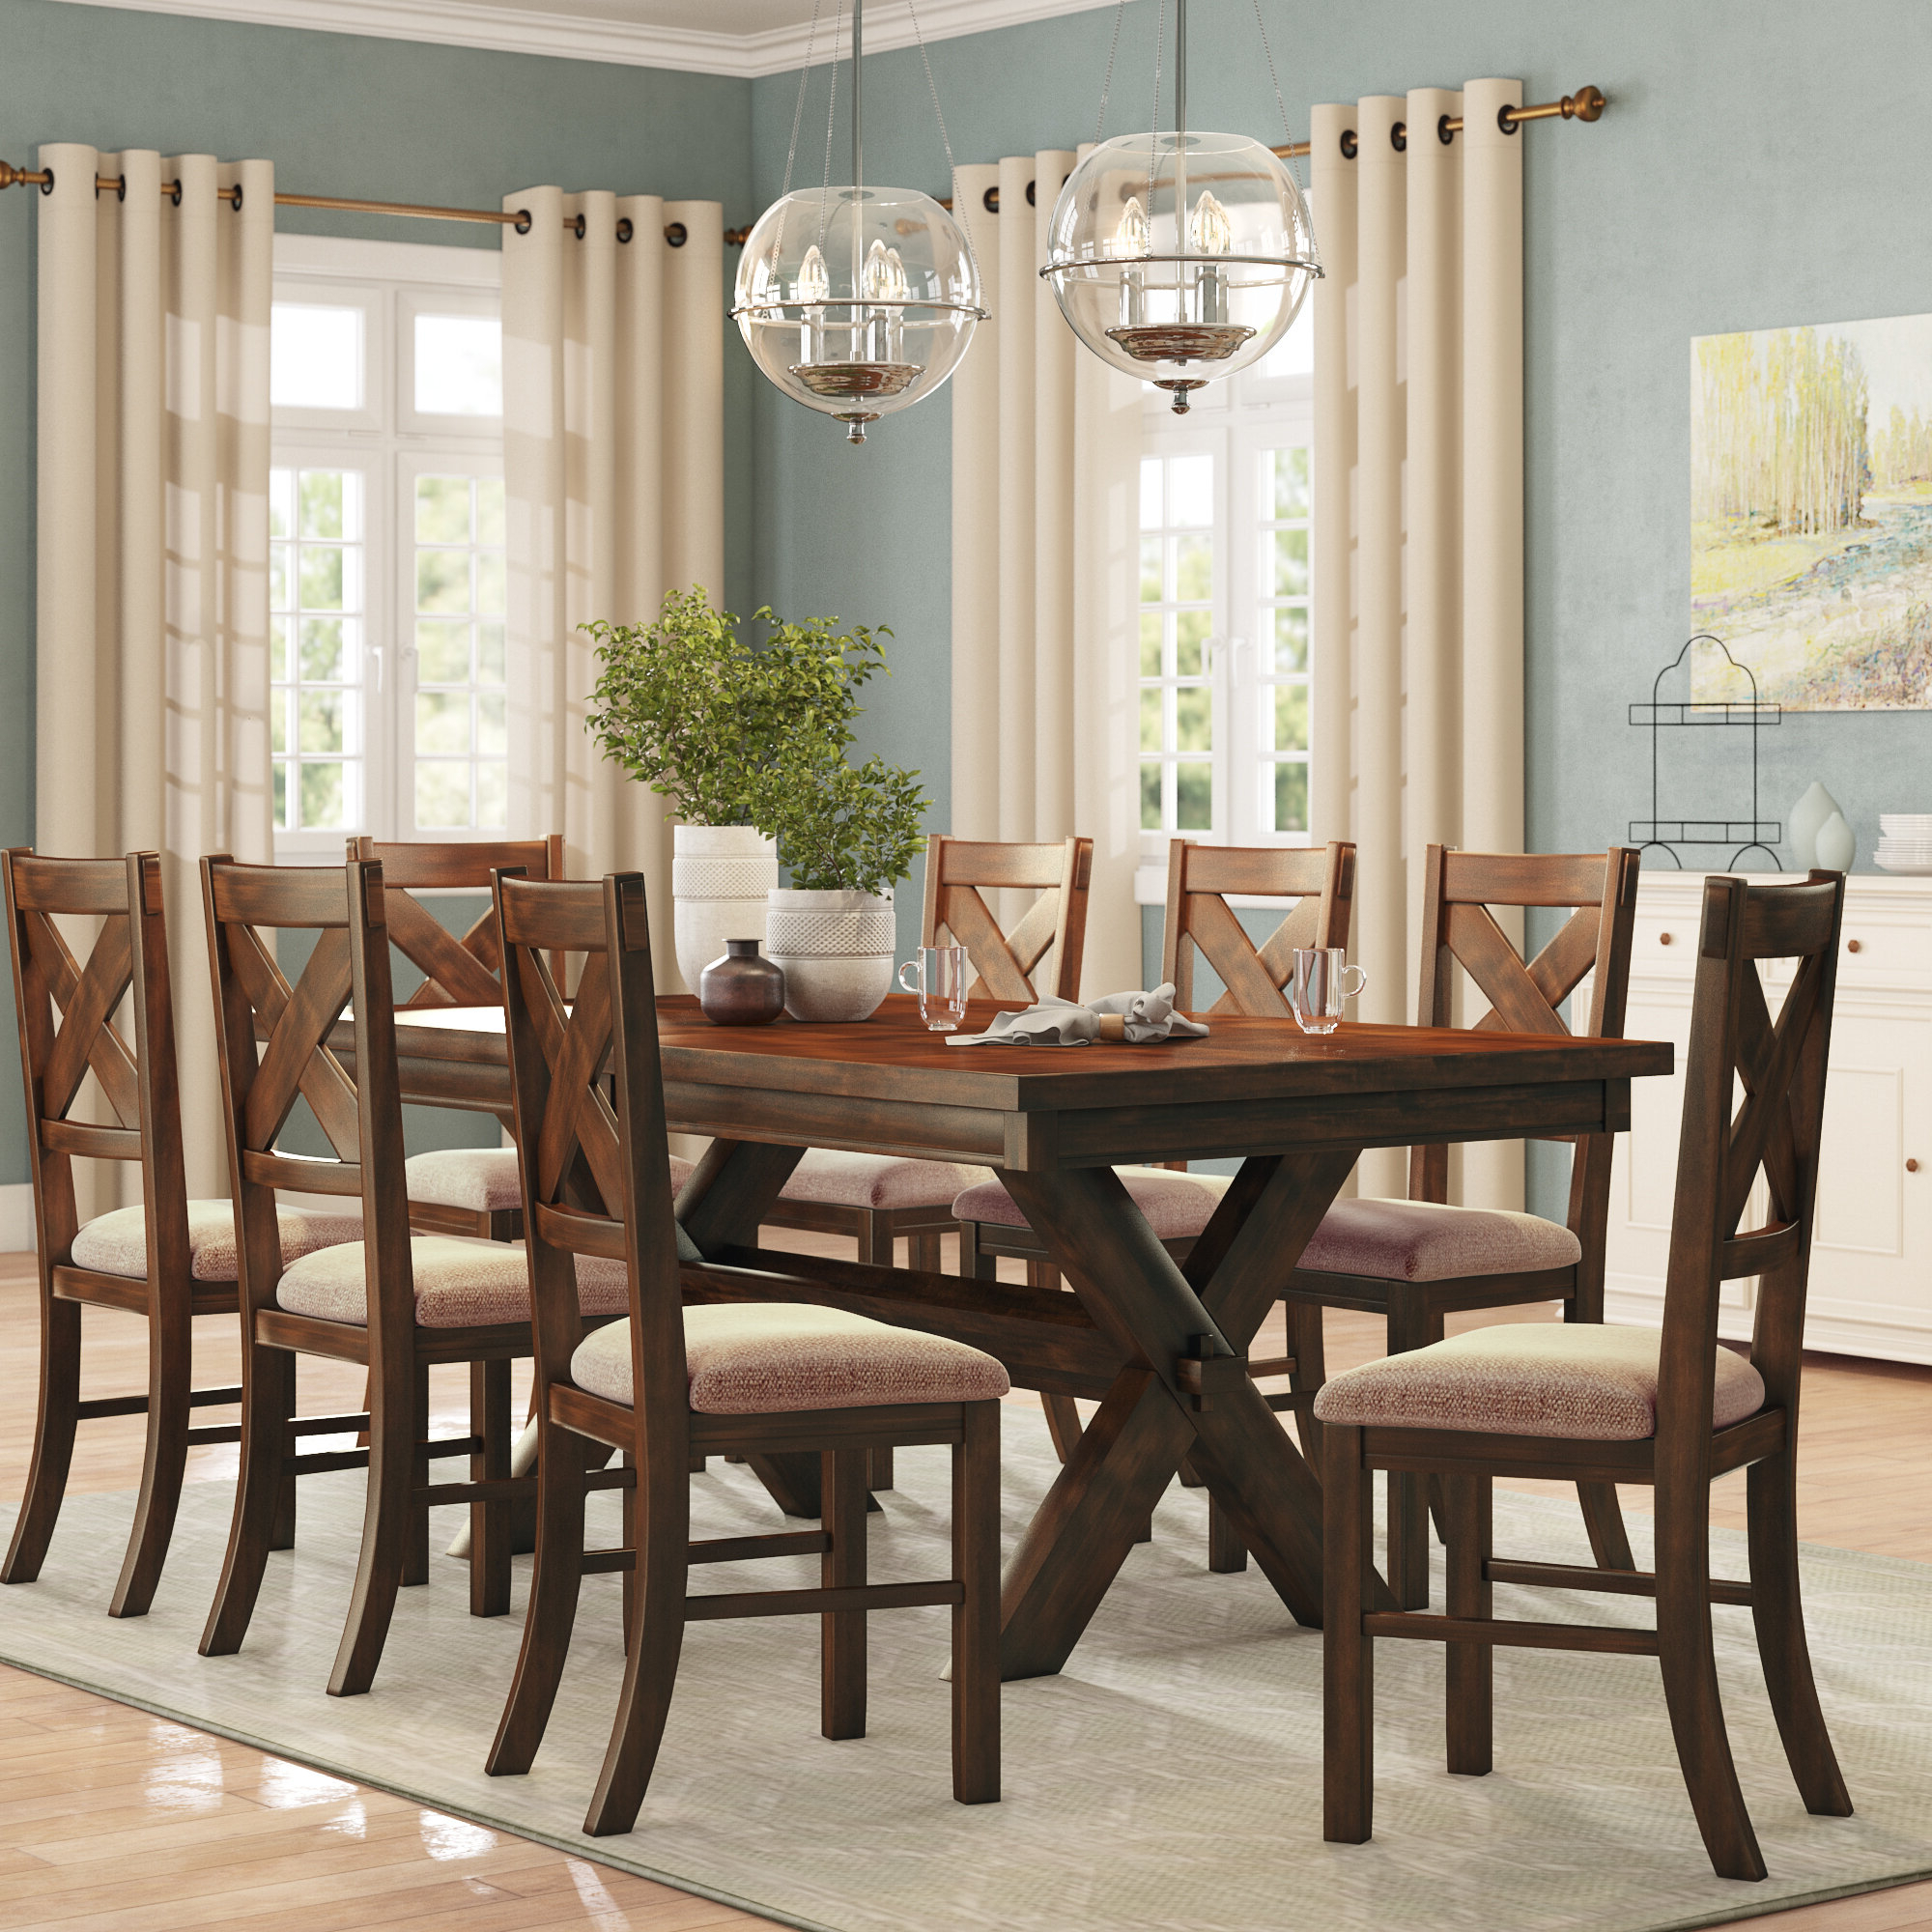 Well Liked Alcott Hill Warsaw 9 Piece Extendable Dining Set & Reviews Regarding Alamo Transitional 4 Seating Double Drop Leaf Round Casual Dining Tables (View 16 of 26)